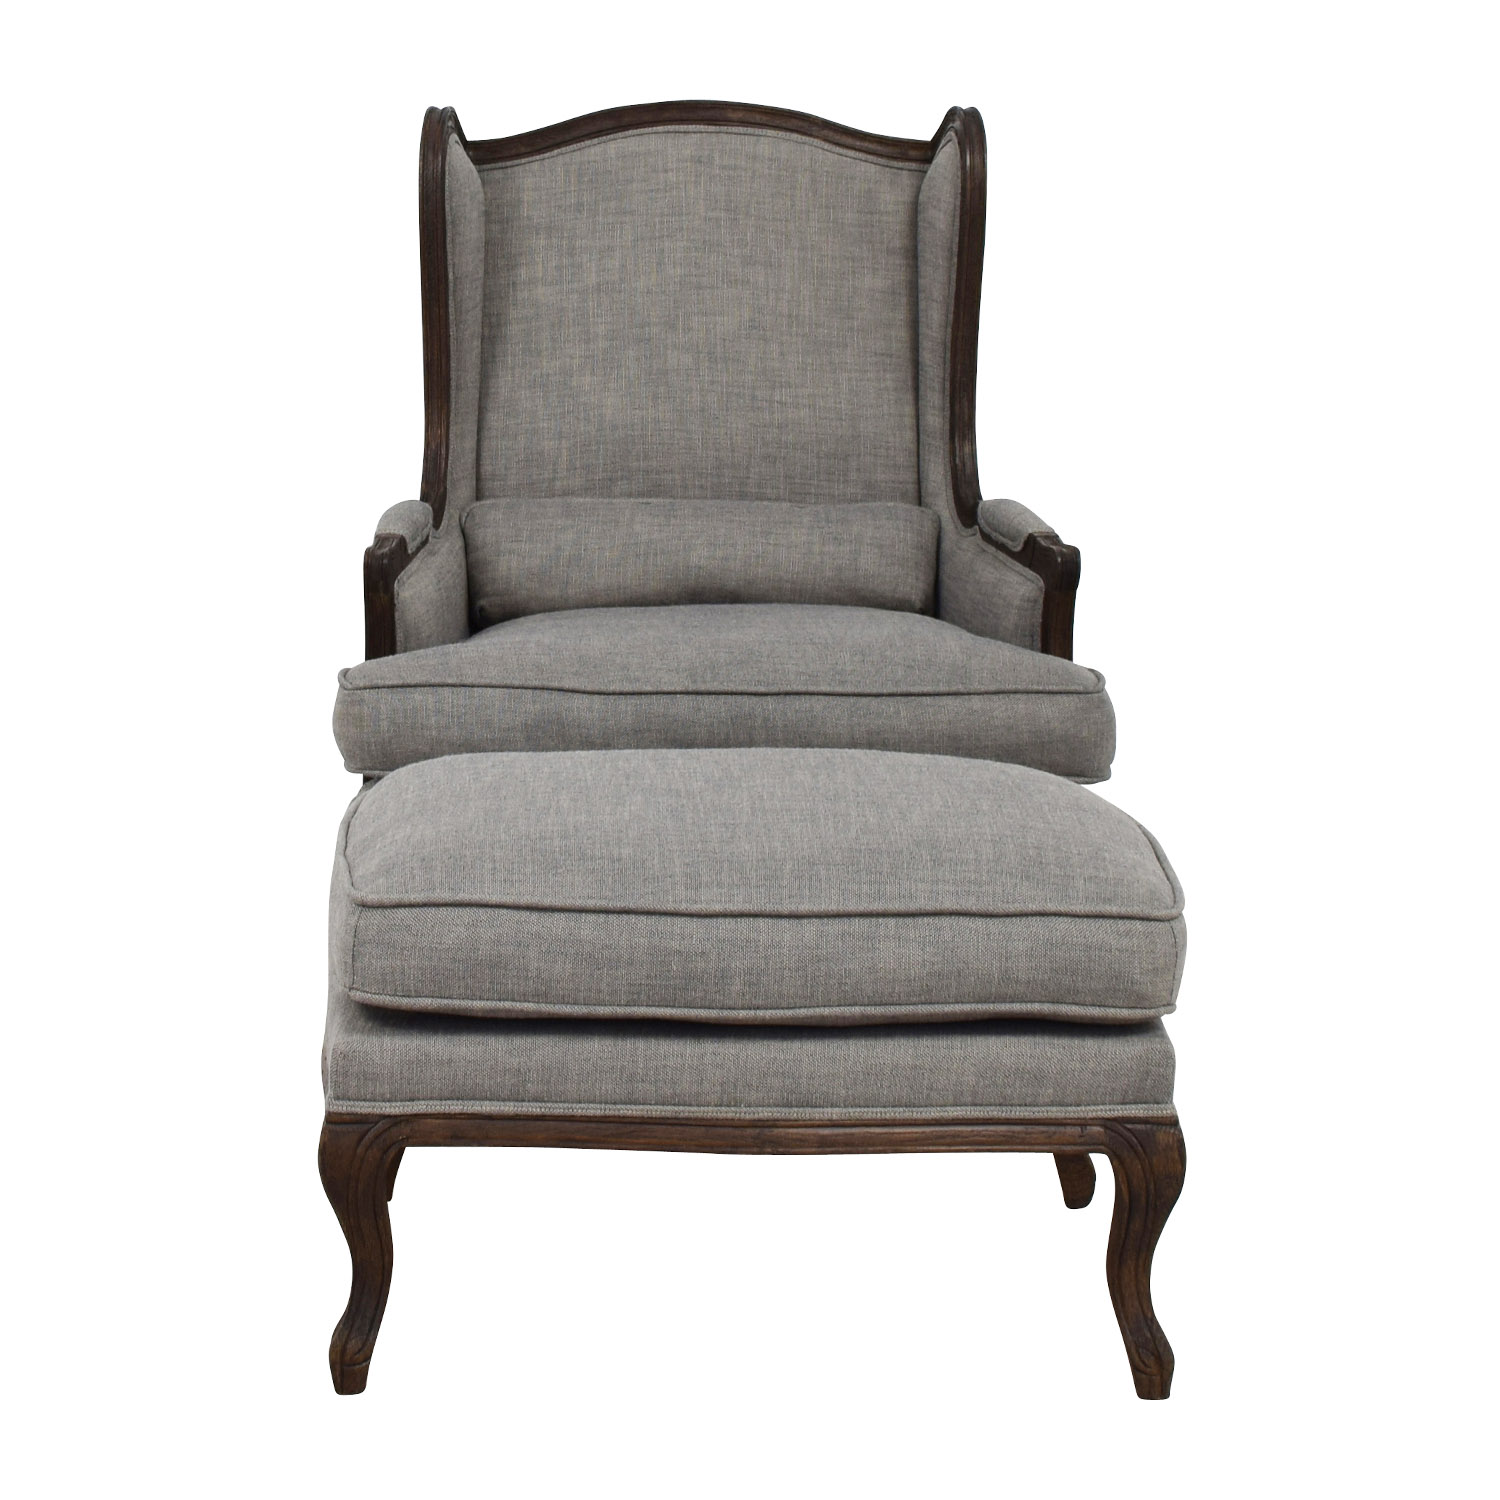 buy Restoration Hardware Grey Chair and Ottoman Restoration Hardware Accent Chairs